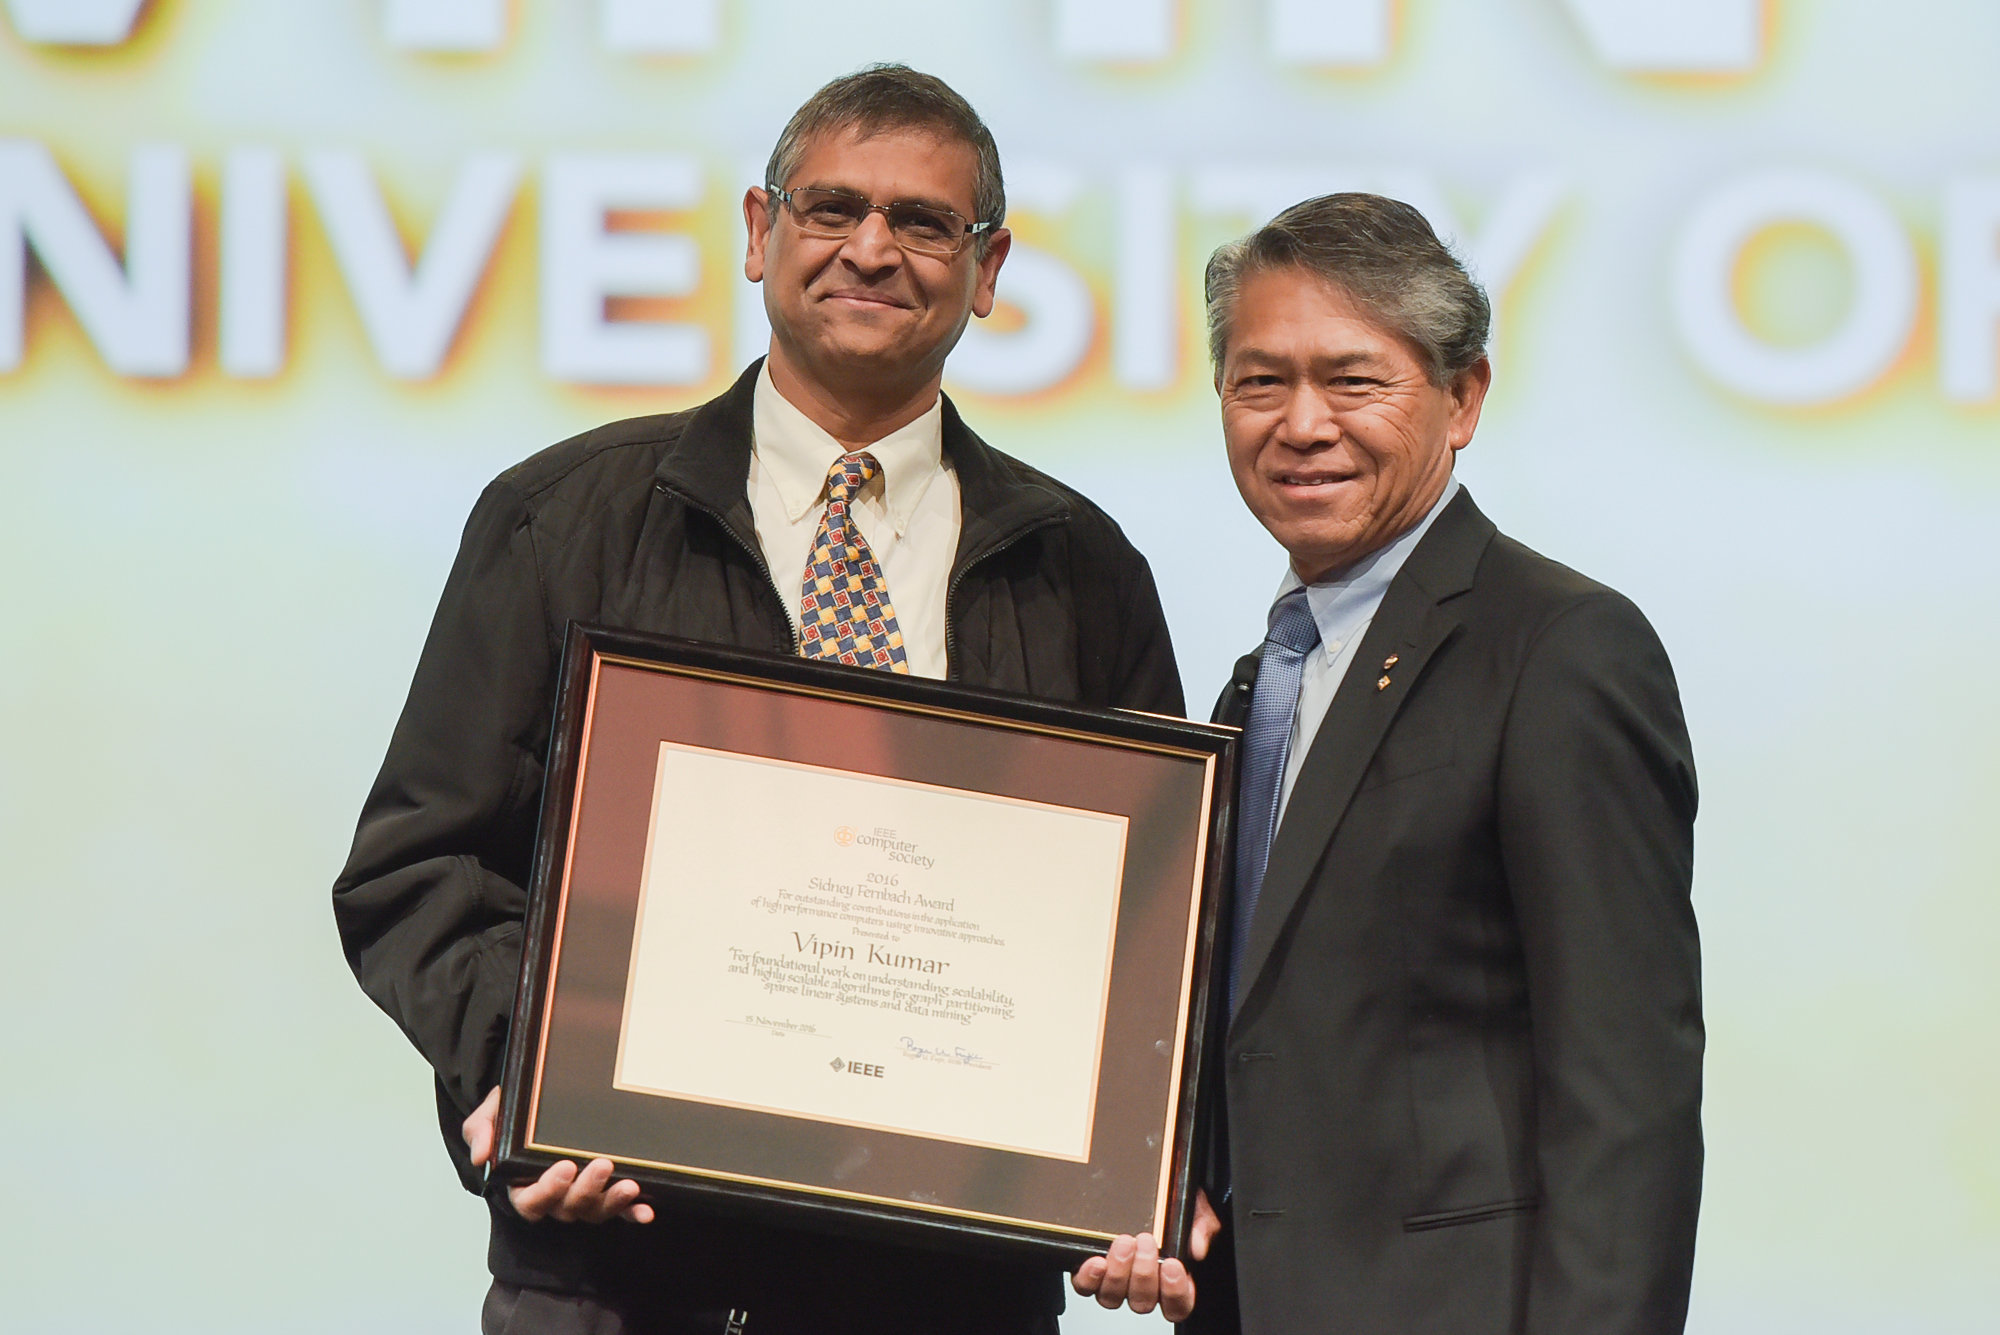 Descriptive Image for Alum Vipin Kumar named  2016 IEEE Computer Society Sidney Fernbach Award Recipient